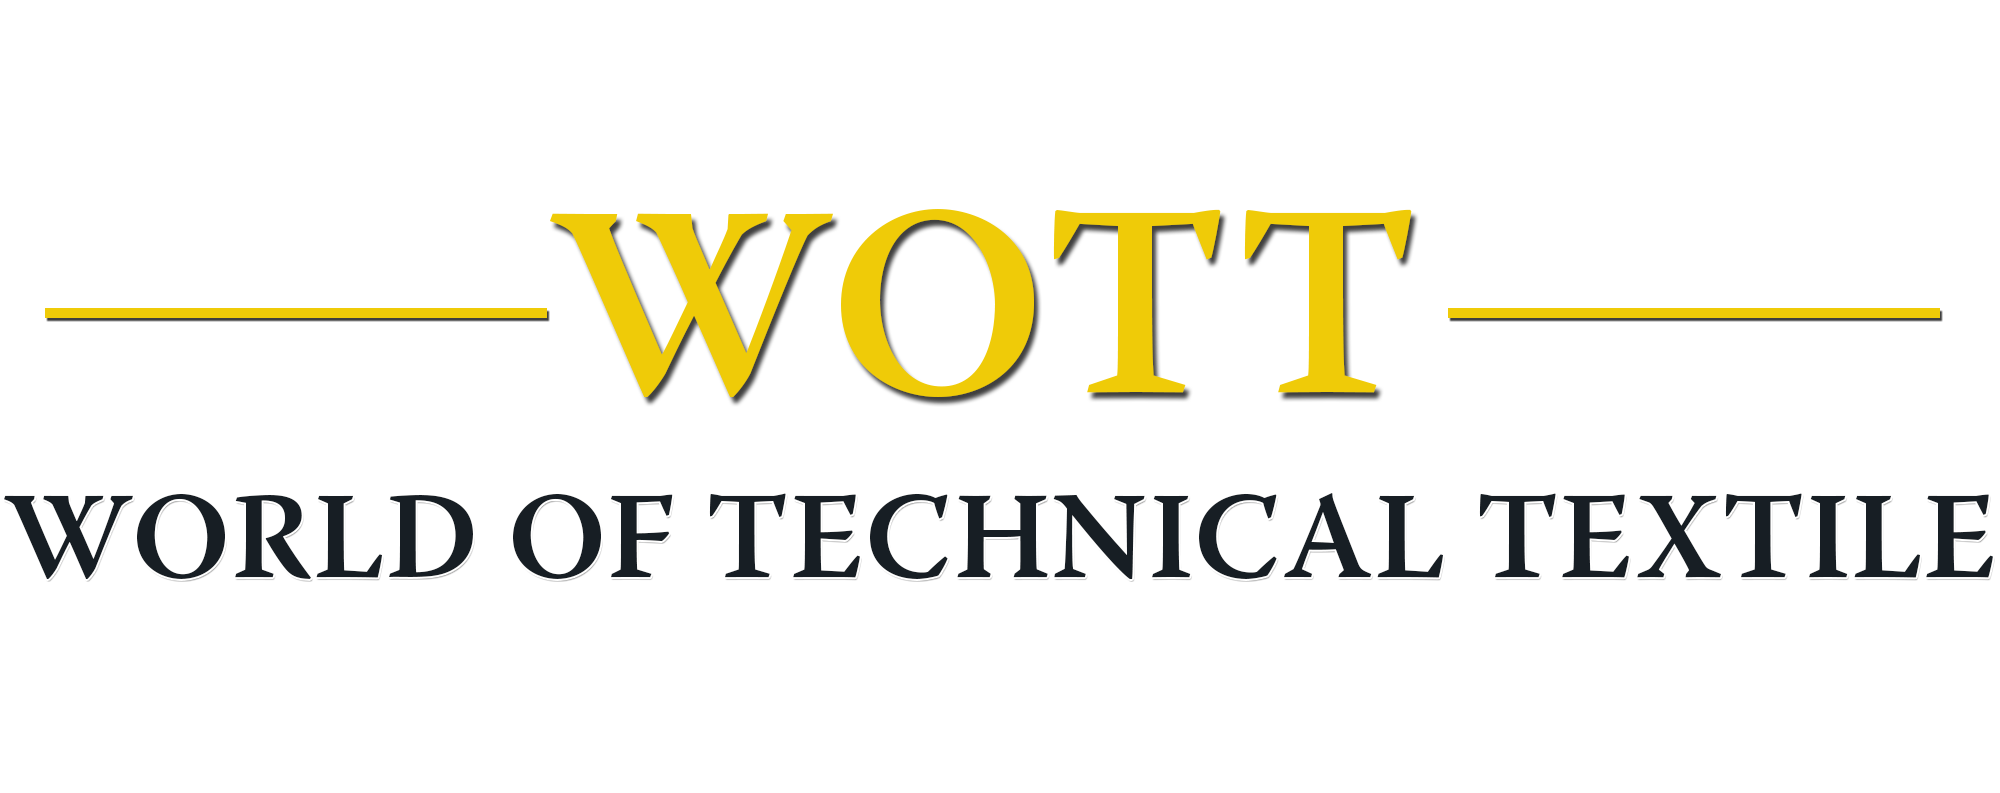 World of Technical Textile